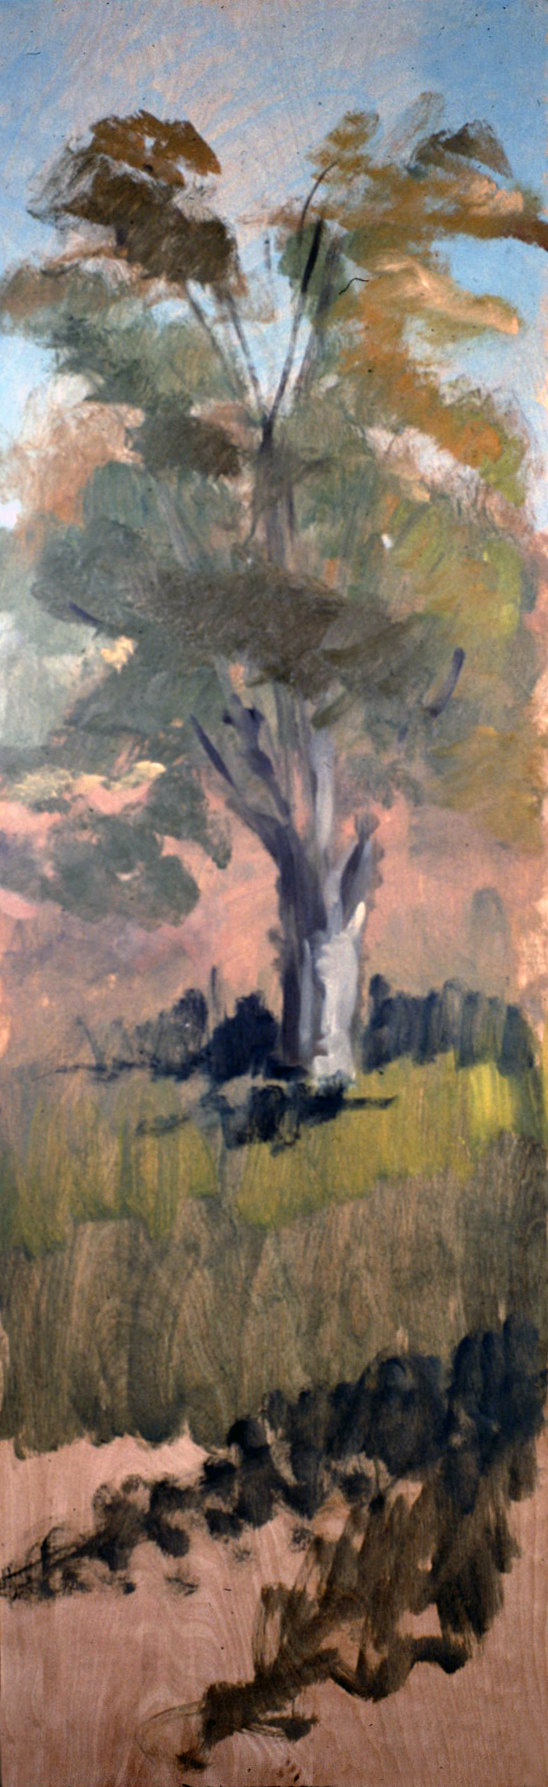 PALE FIRE- oil on panel- 48 x 12- 1990